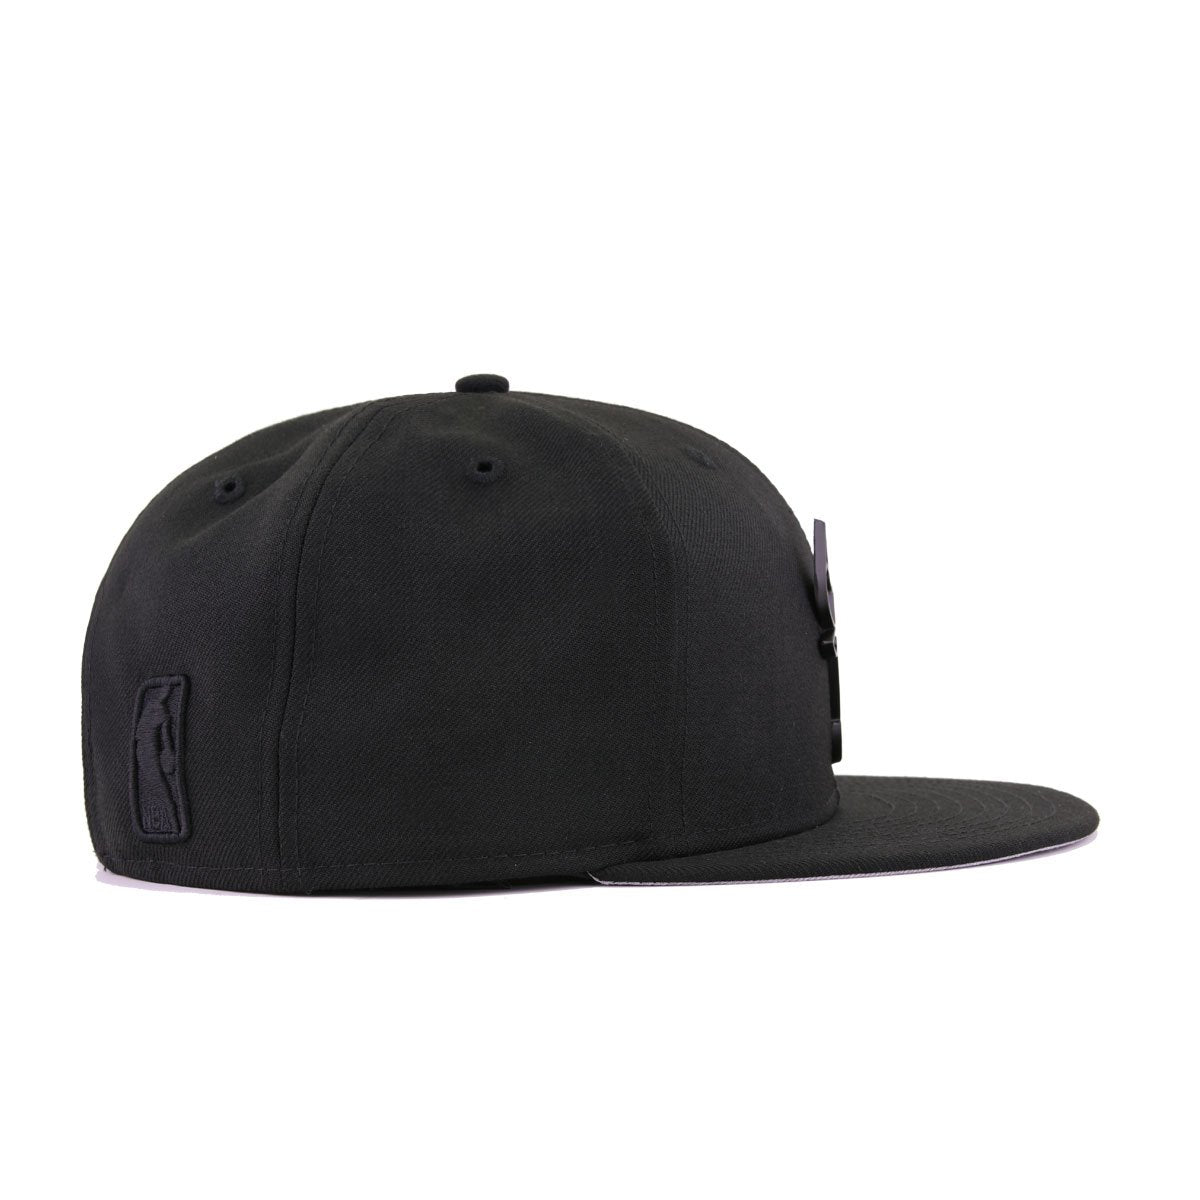 Chicago Bulls Black Matte Black Metal Badge New Era 9Fifty Snapback